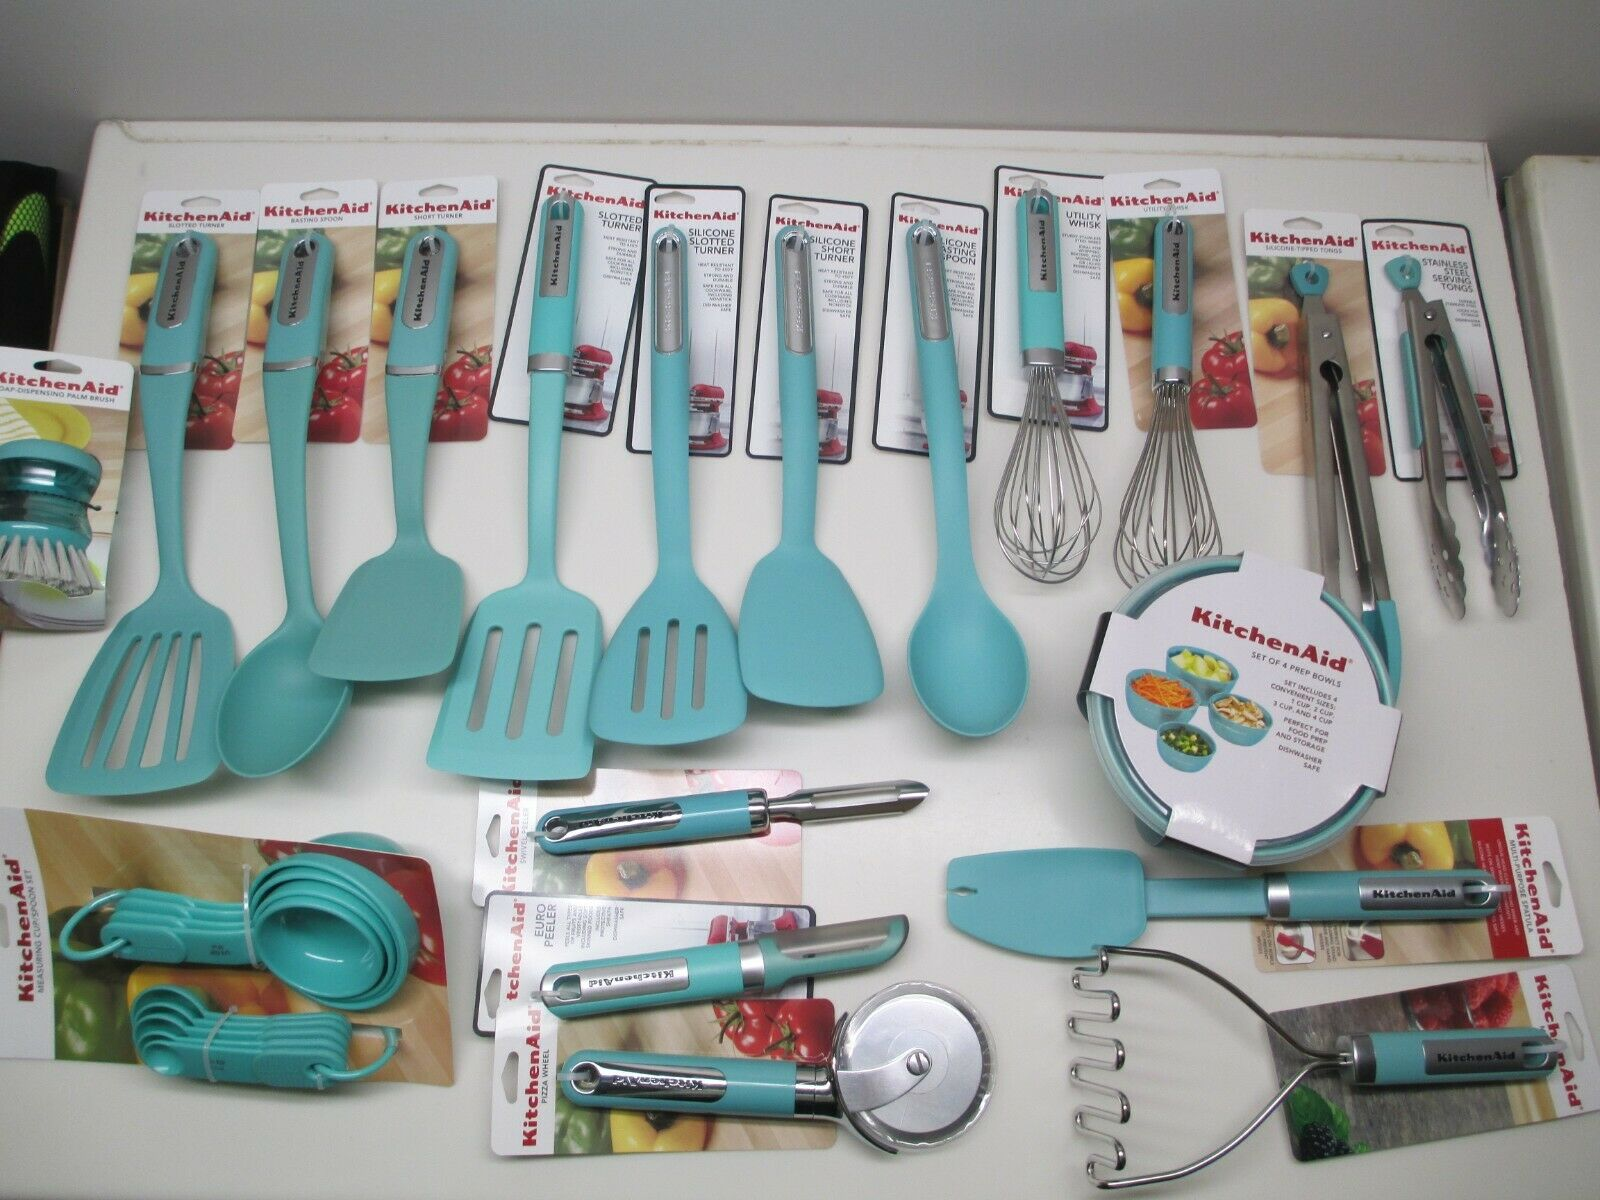 KITCHENAID KITCHEN UTENSILS and towels in aqua sky (HAQA) - $8.50 ...